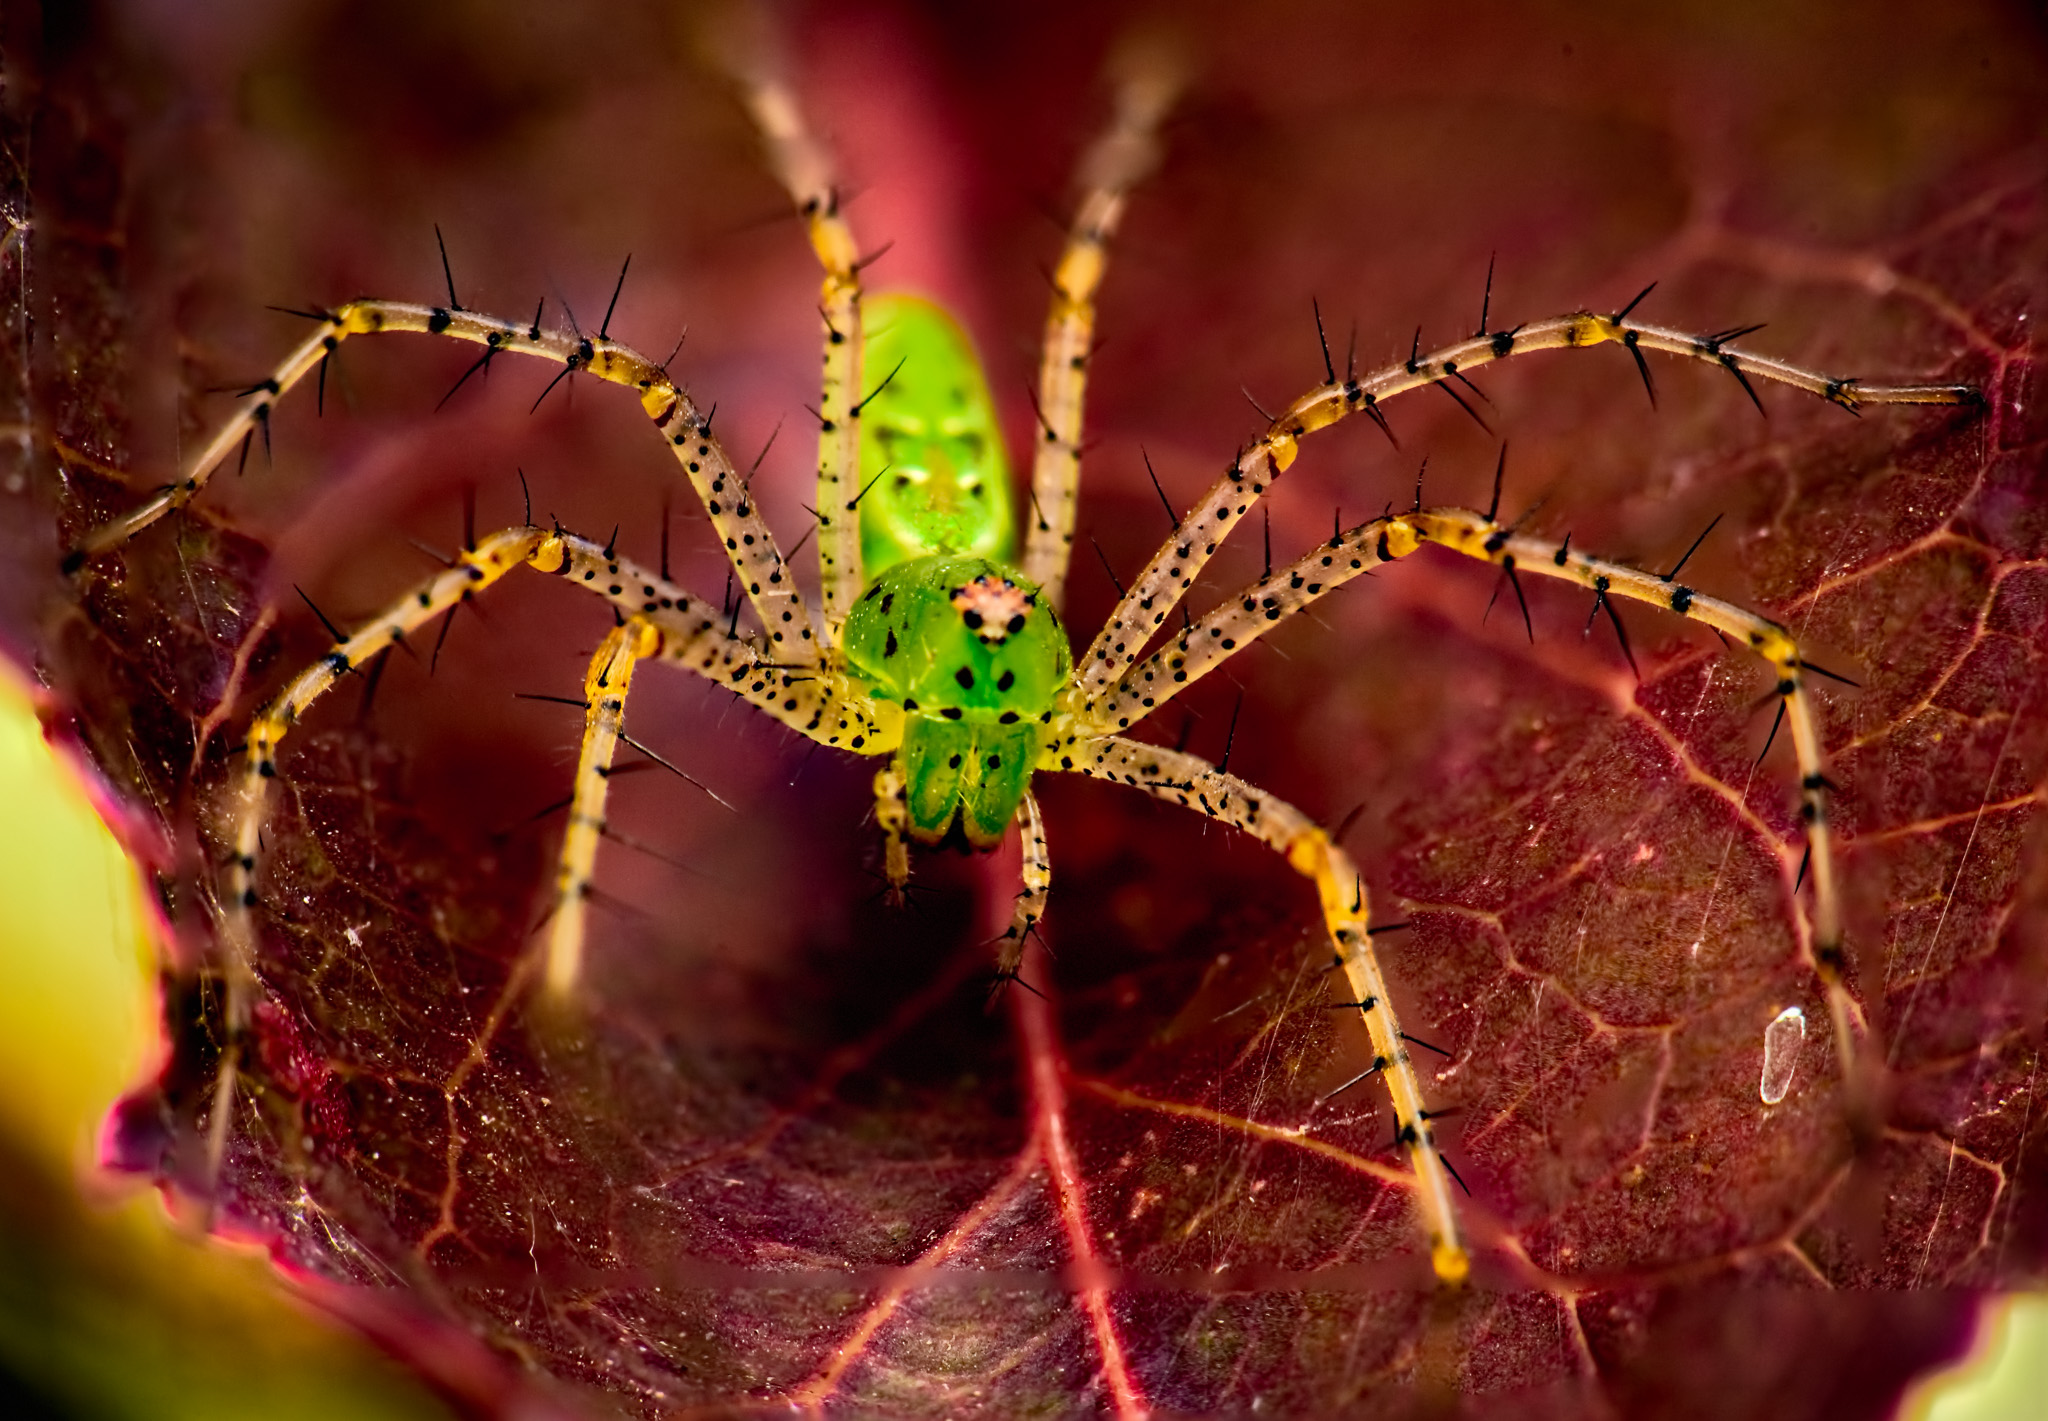 A Very Green Spider